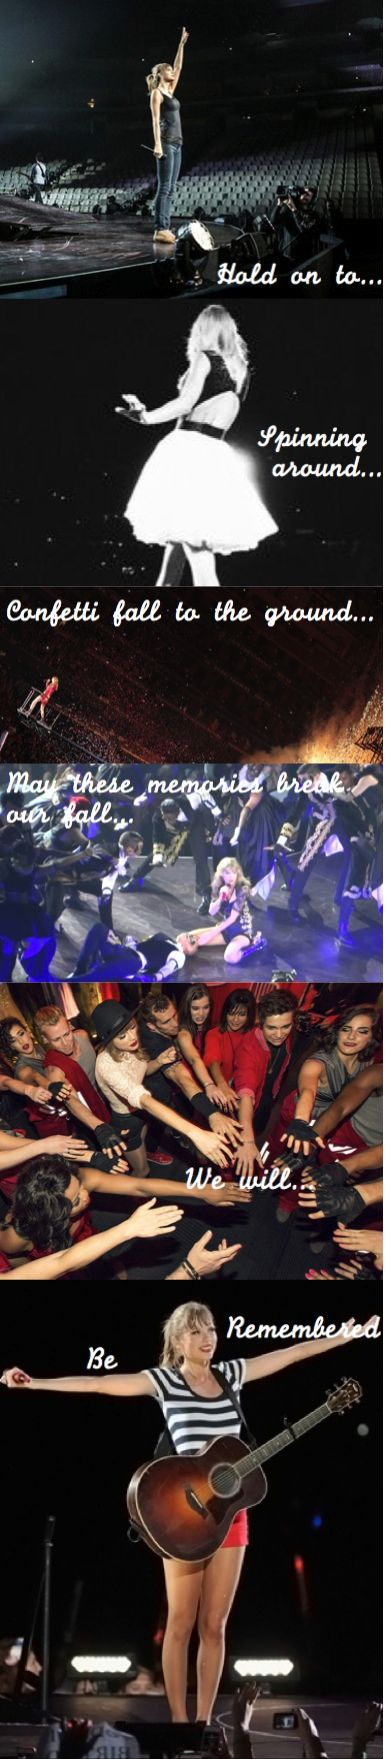 I love this! And may I just say that Long Live is one of my favorite songs. Long live the Red tour!